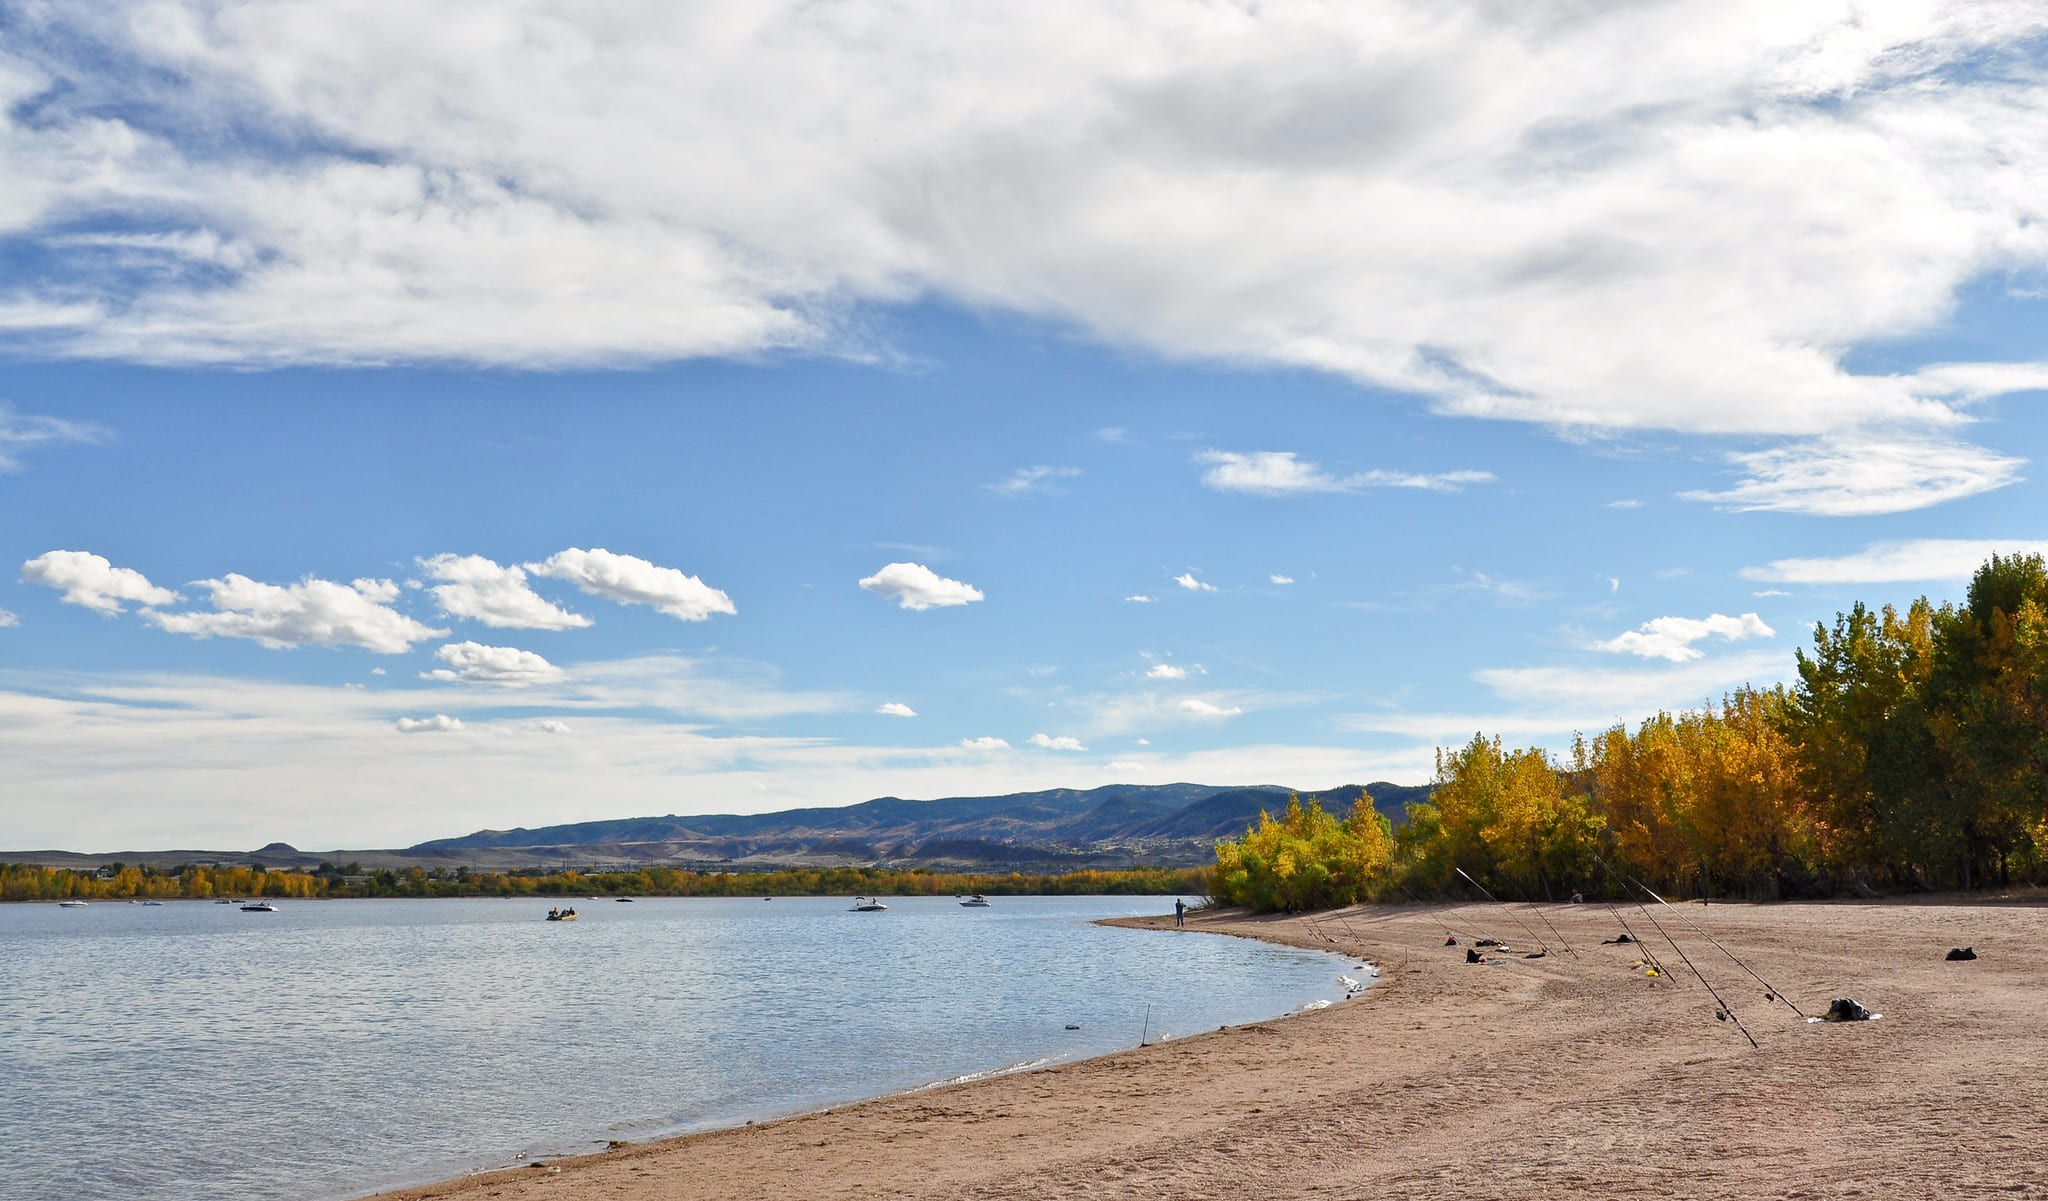 image of the beach at chatfield state park